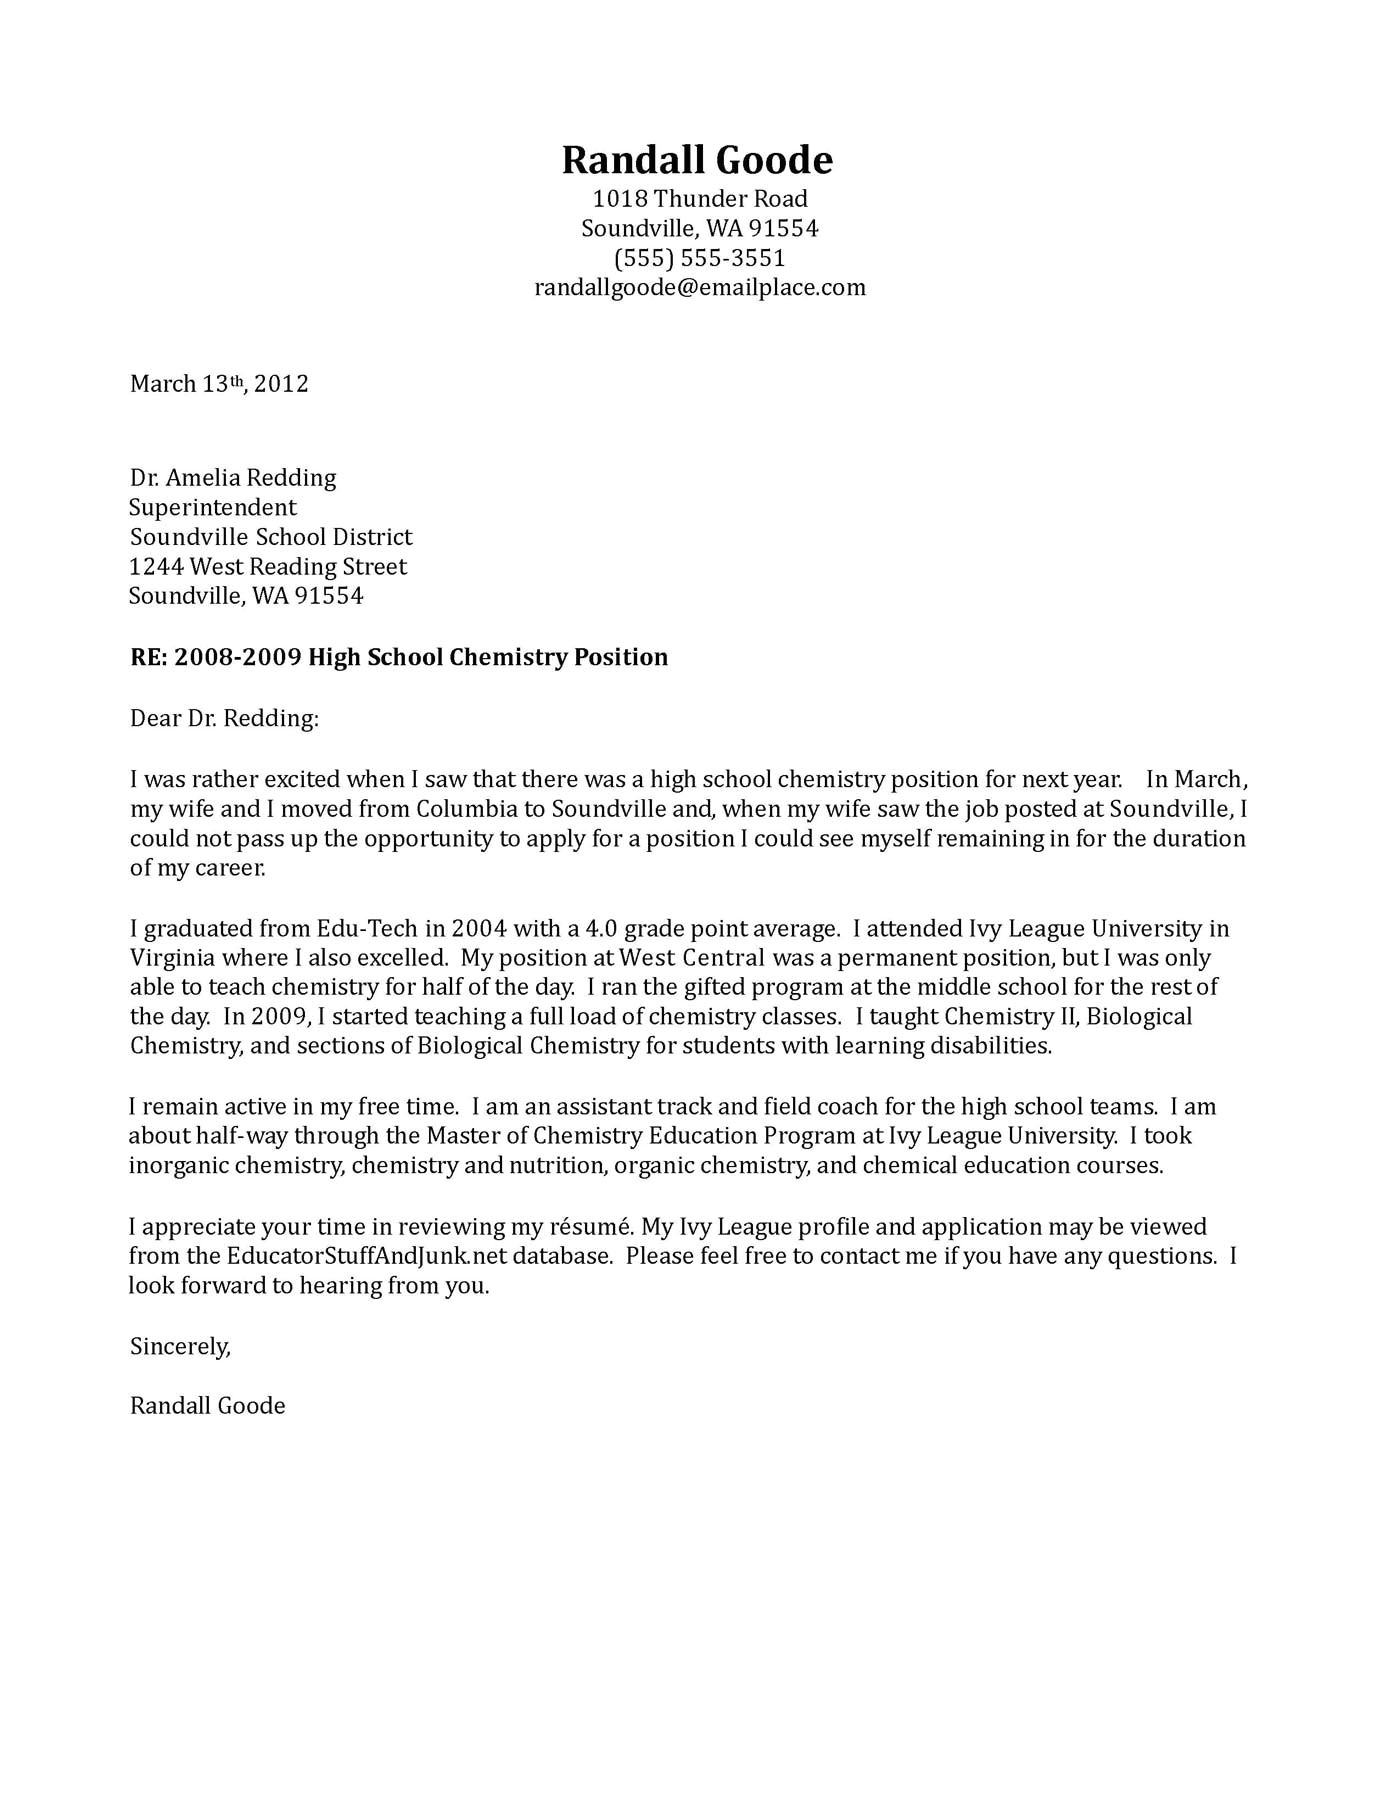 example of letter to school district